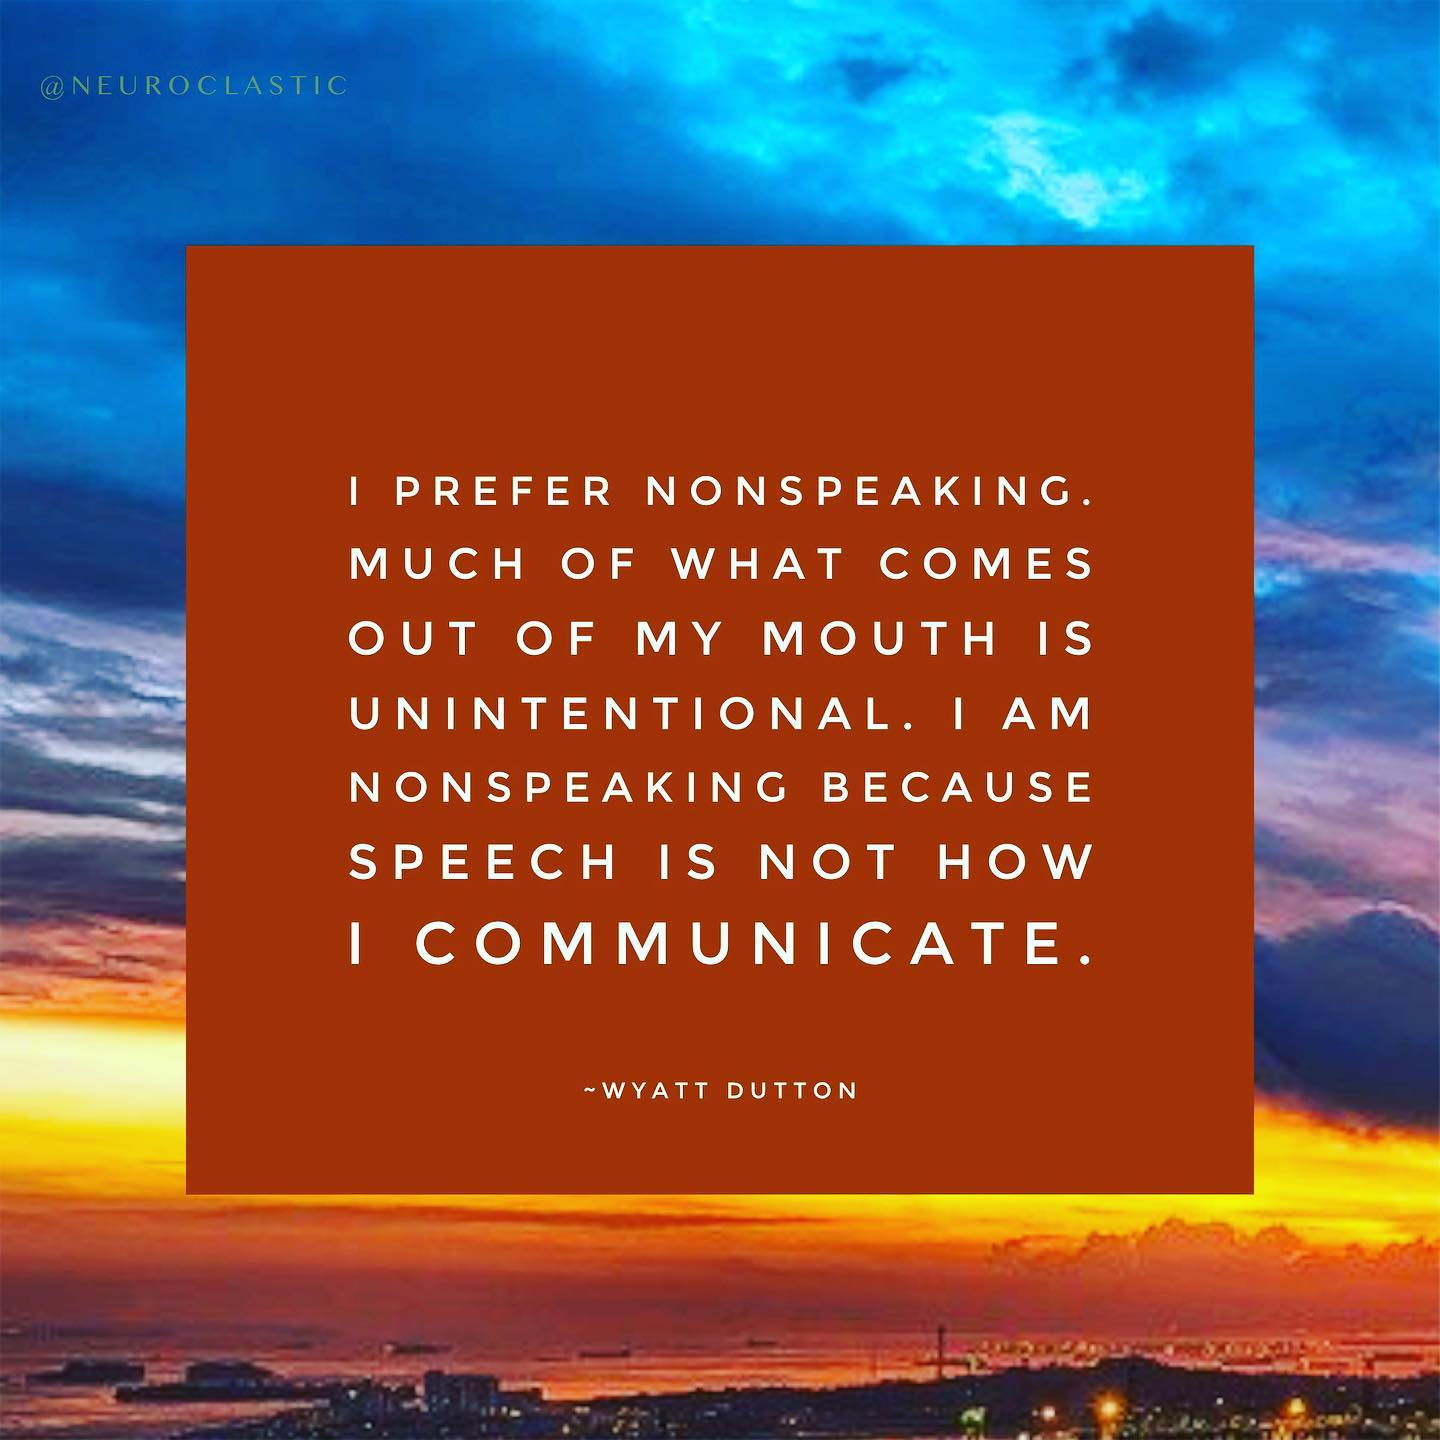 I prefer nonspeaking. Much of what comes out of my mouth is unintentional. I am nonspeaking because speech is not how I communicate. ~Wyatt Dutton. Image has a colorful sky as the background with the quote above in a box.